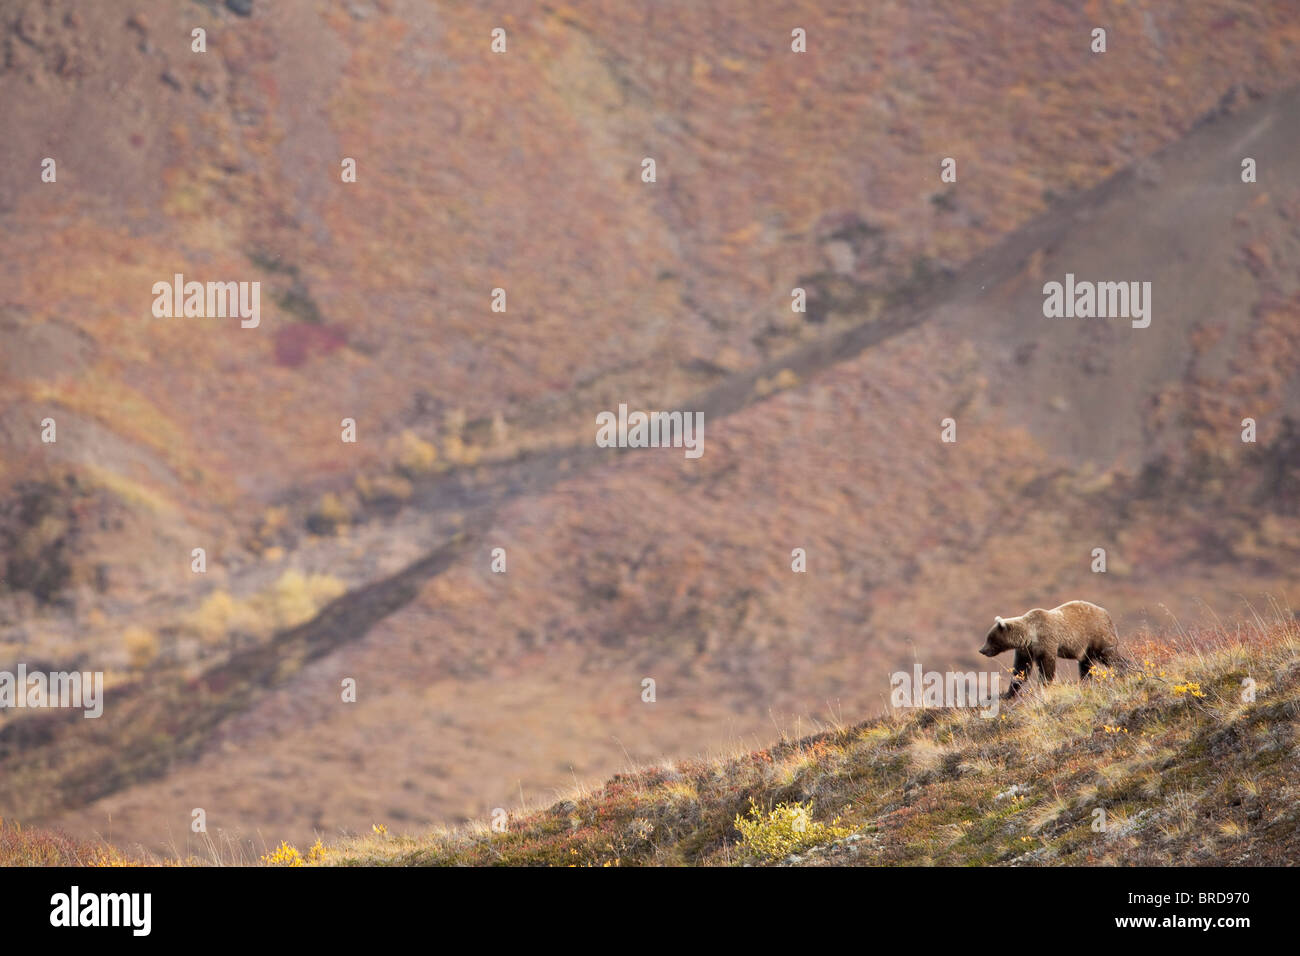 Grizzly Bear walking on a  ridge among fall colors on tundra, Denali National Park, Interior Alaska - Stock Image